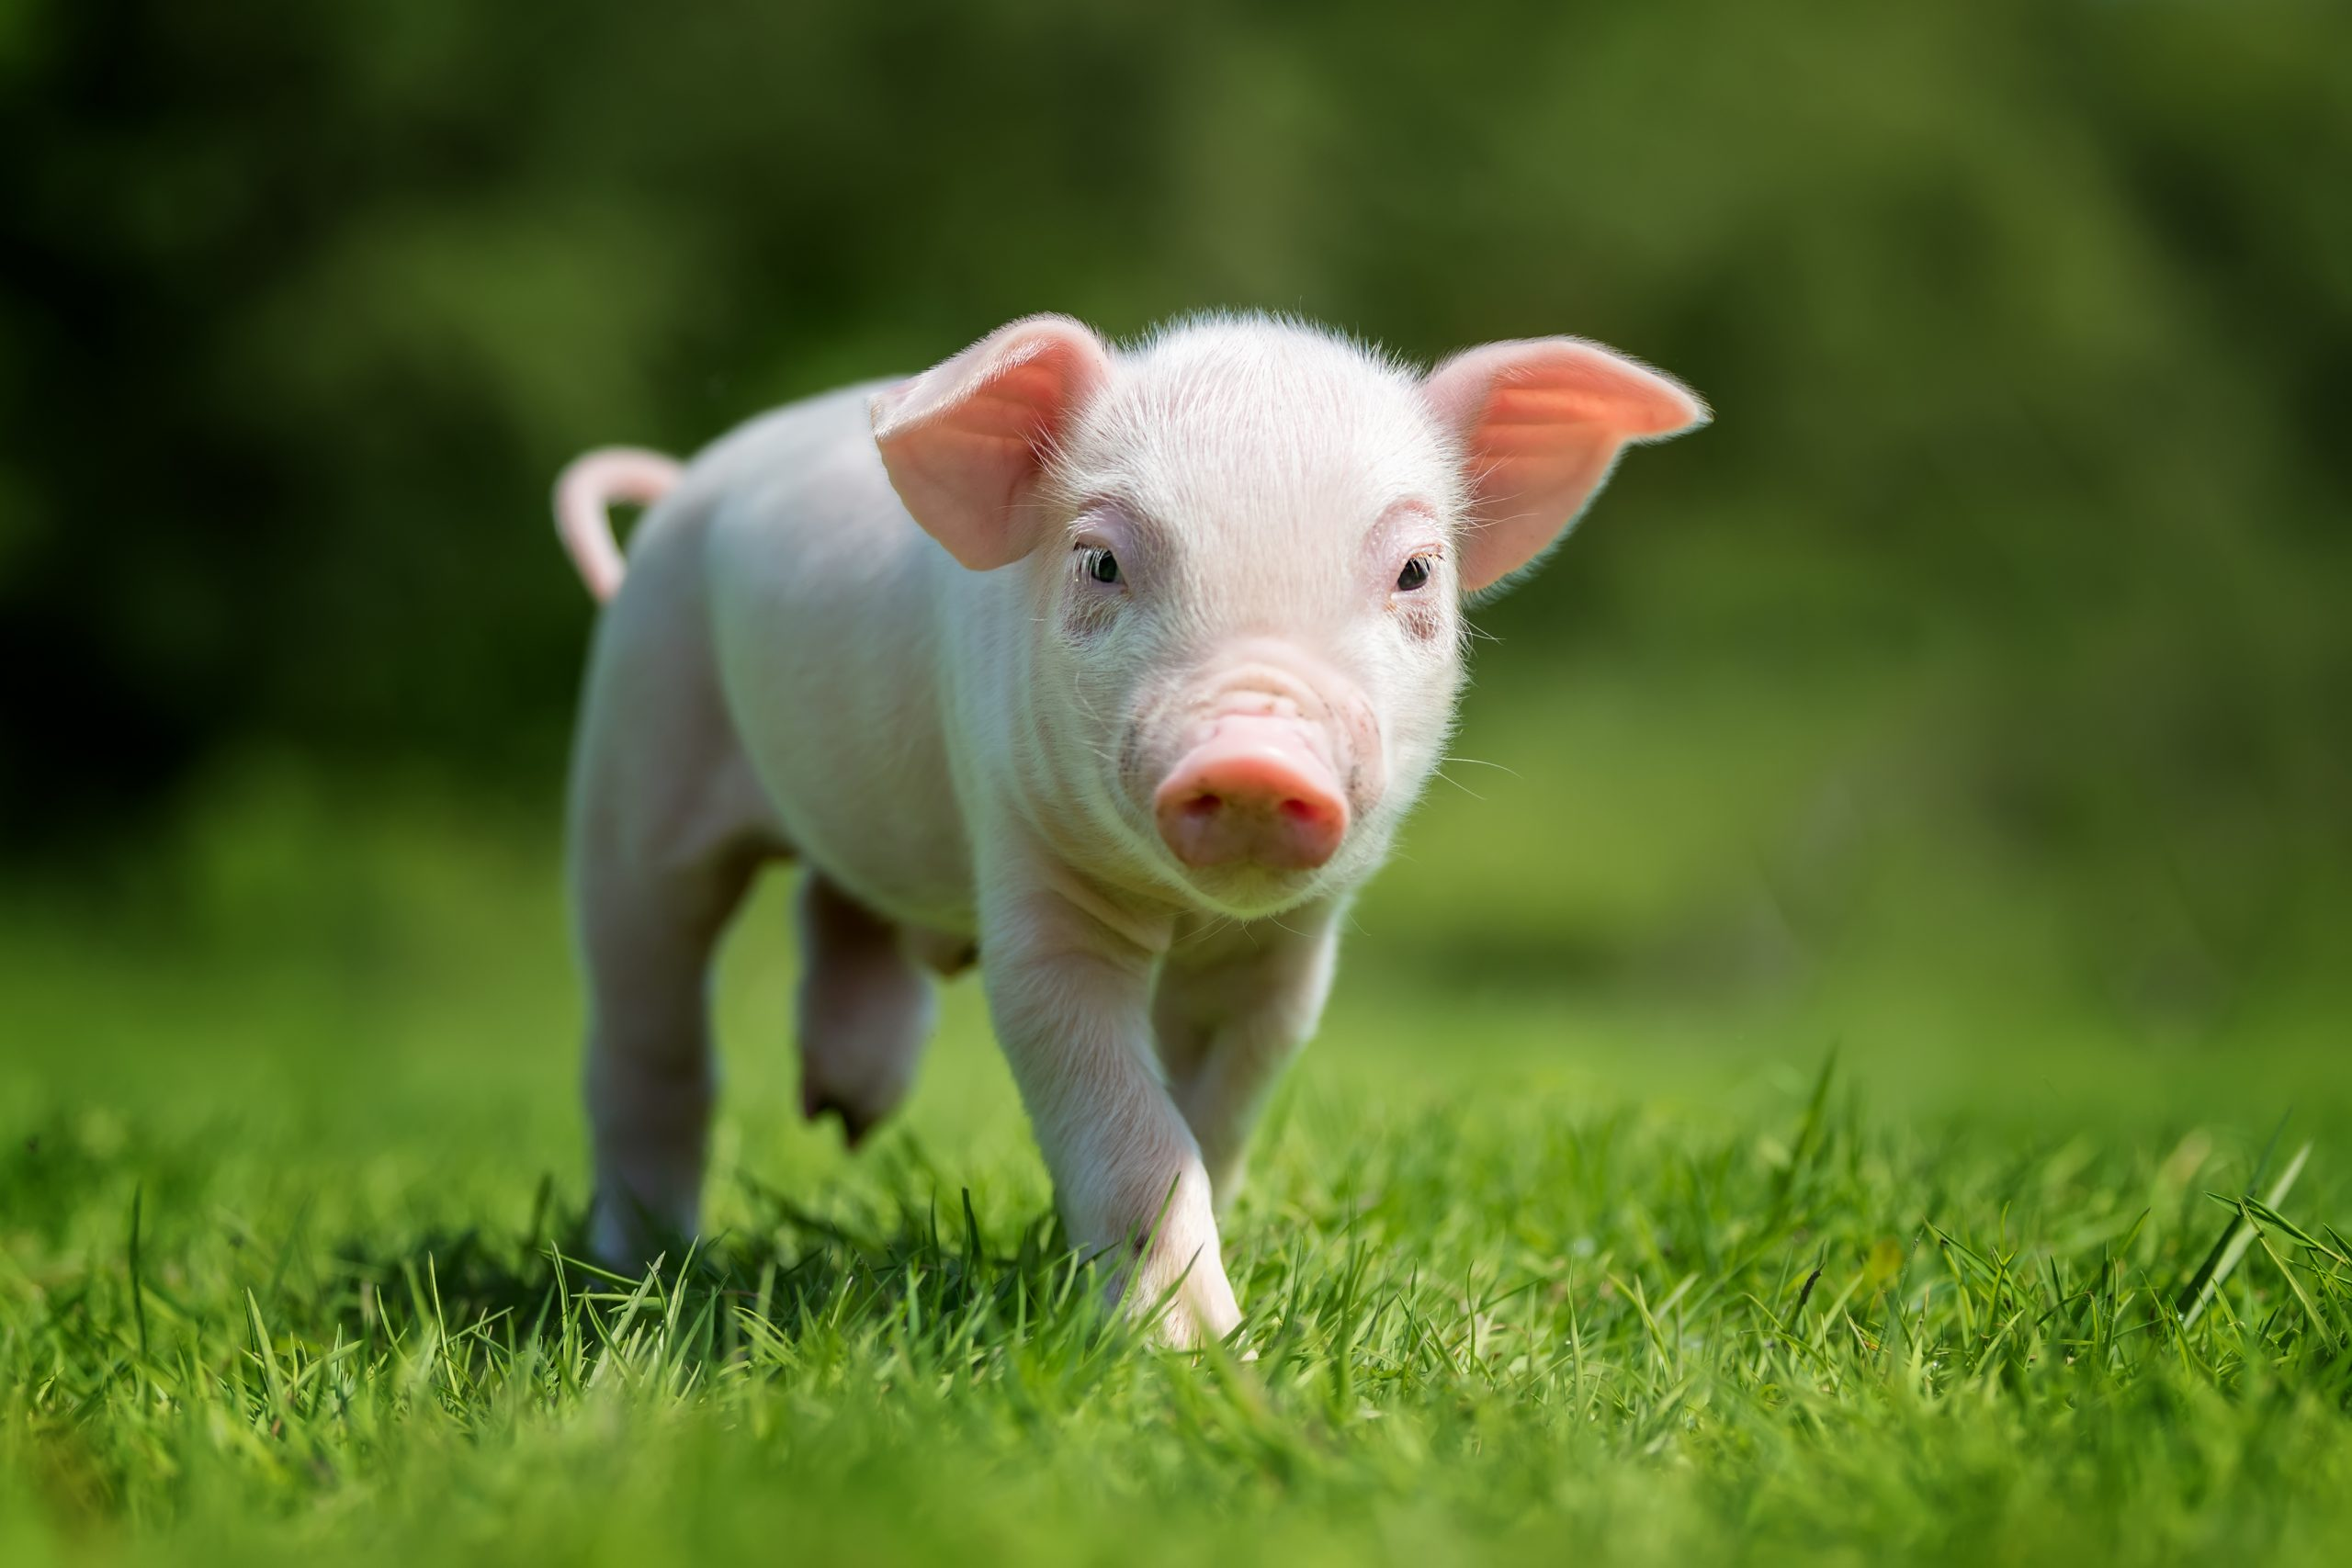 Improving Piglet's Intestinal Eco-System